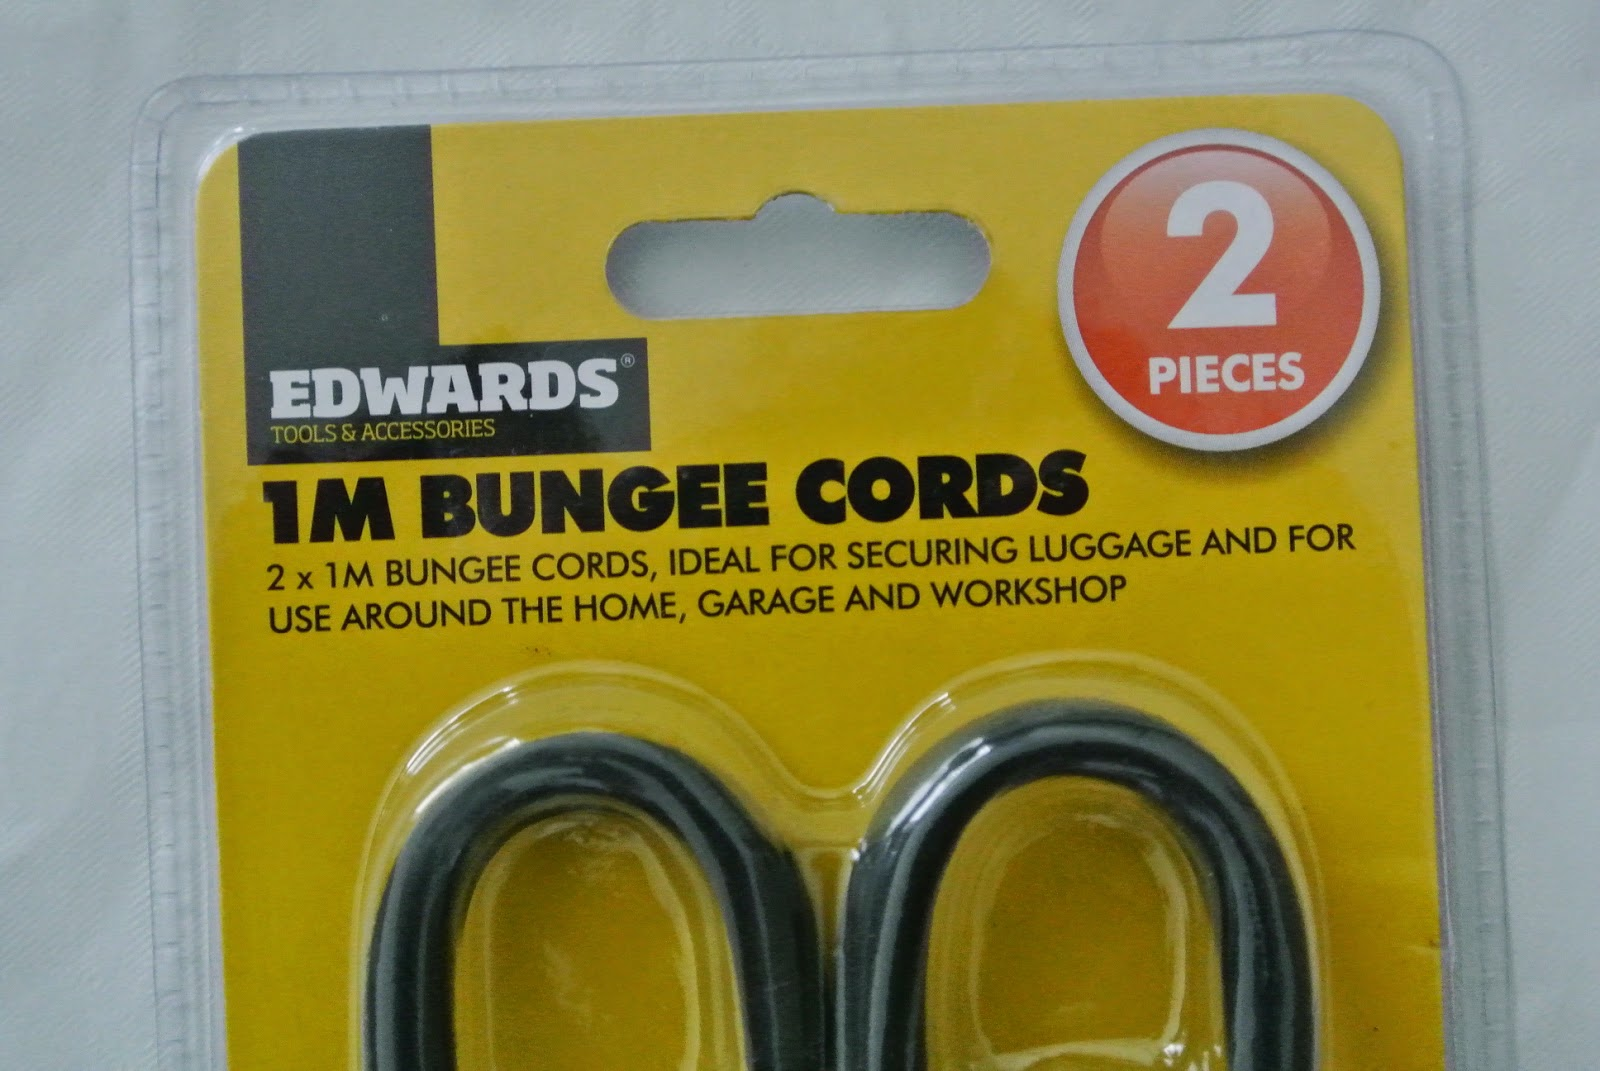 Poundworld pair of 1m bungee cords